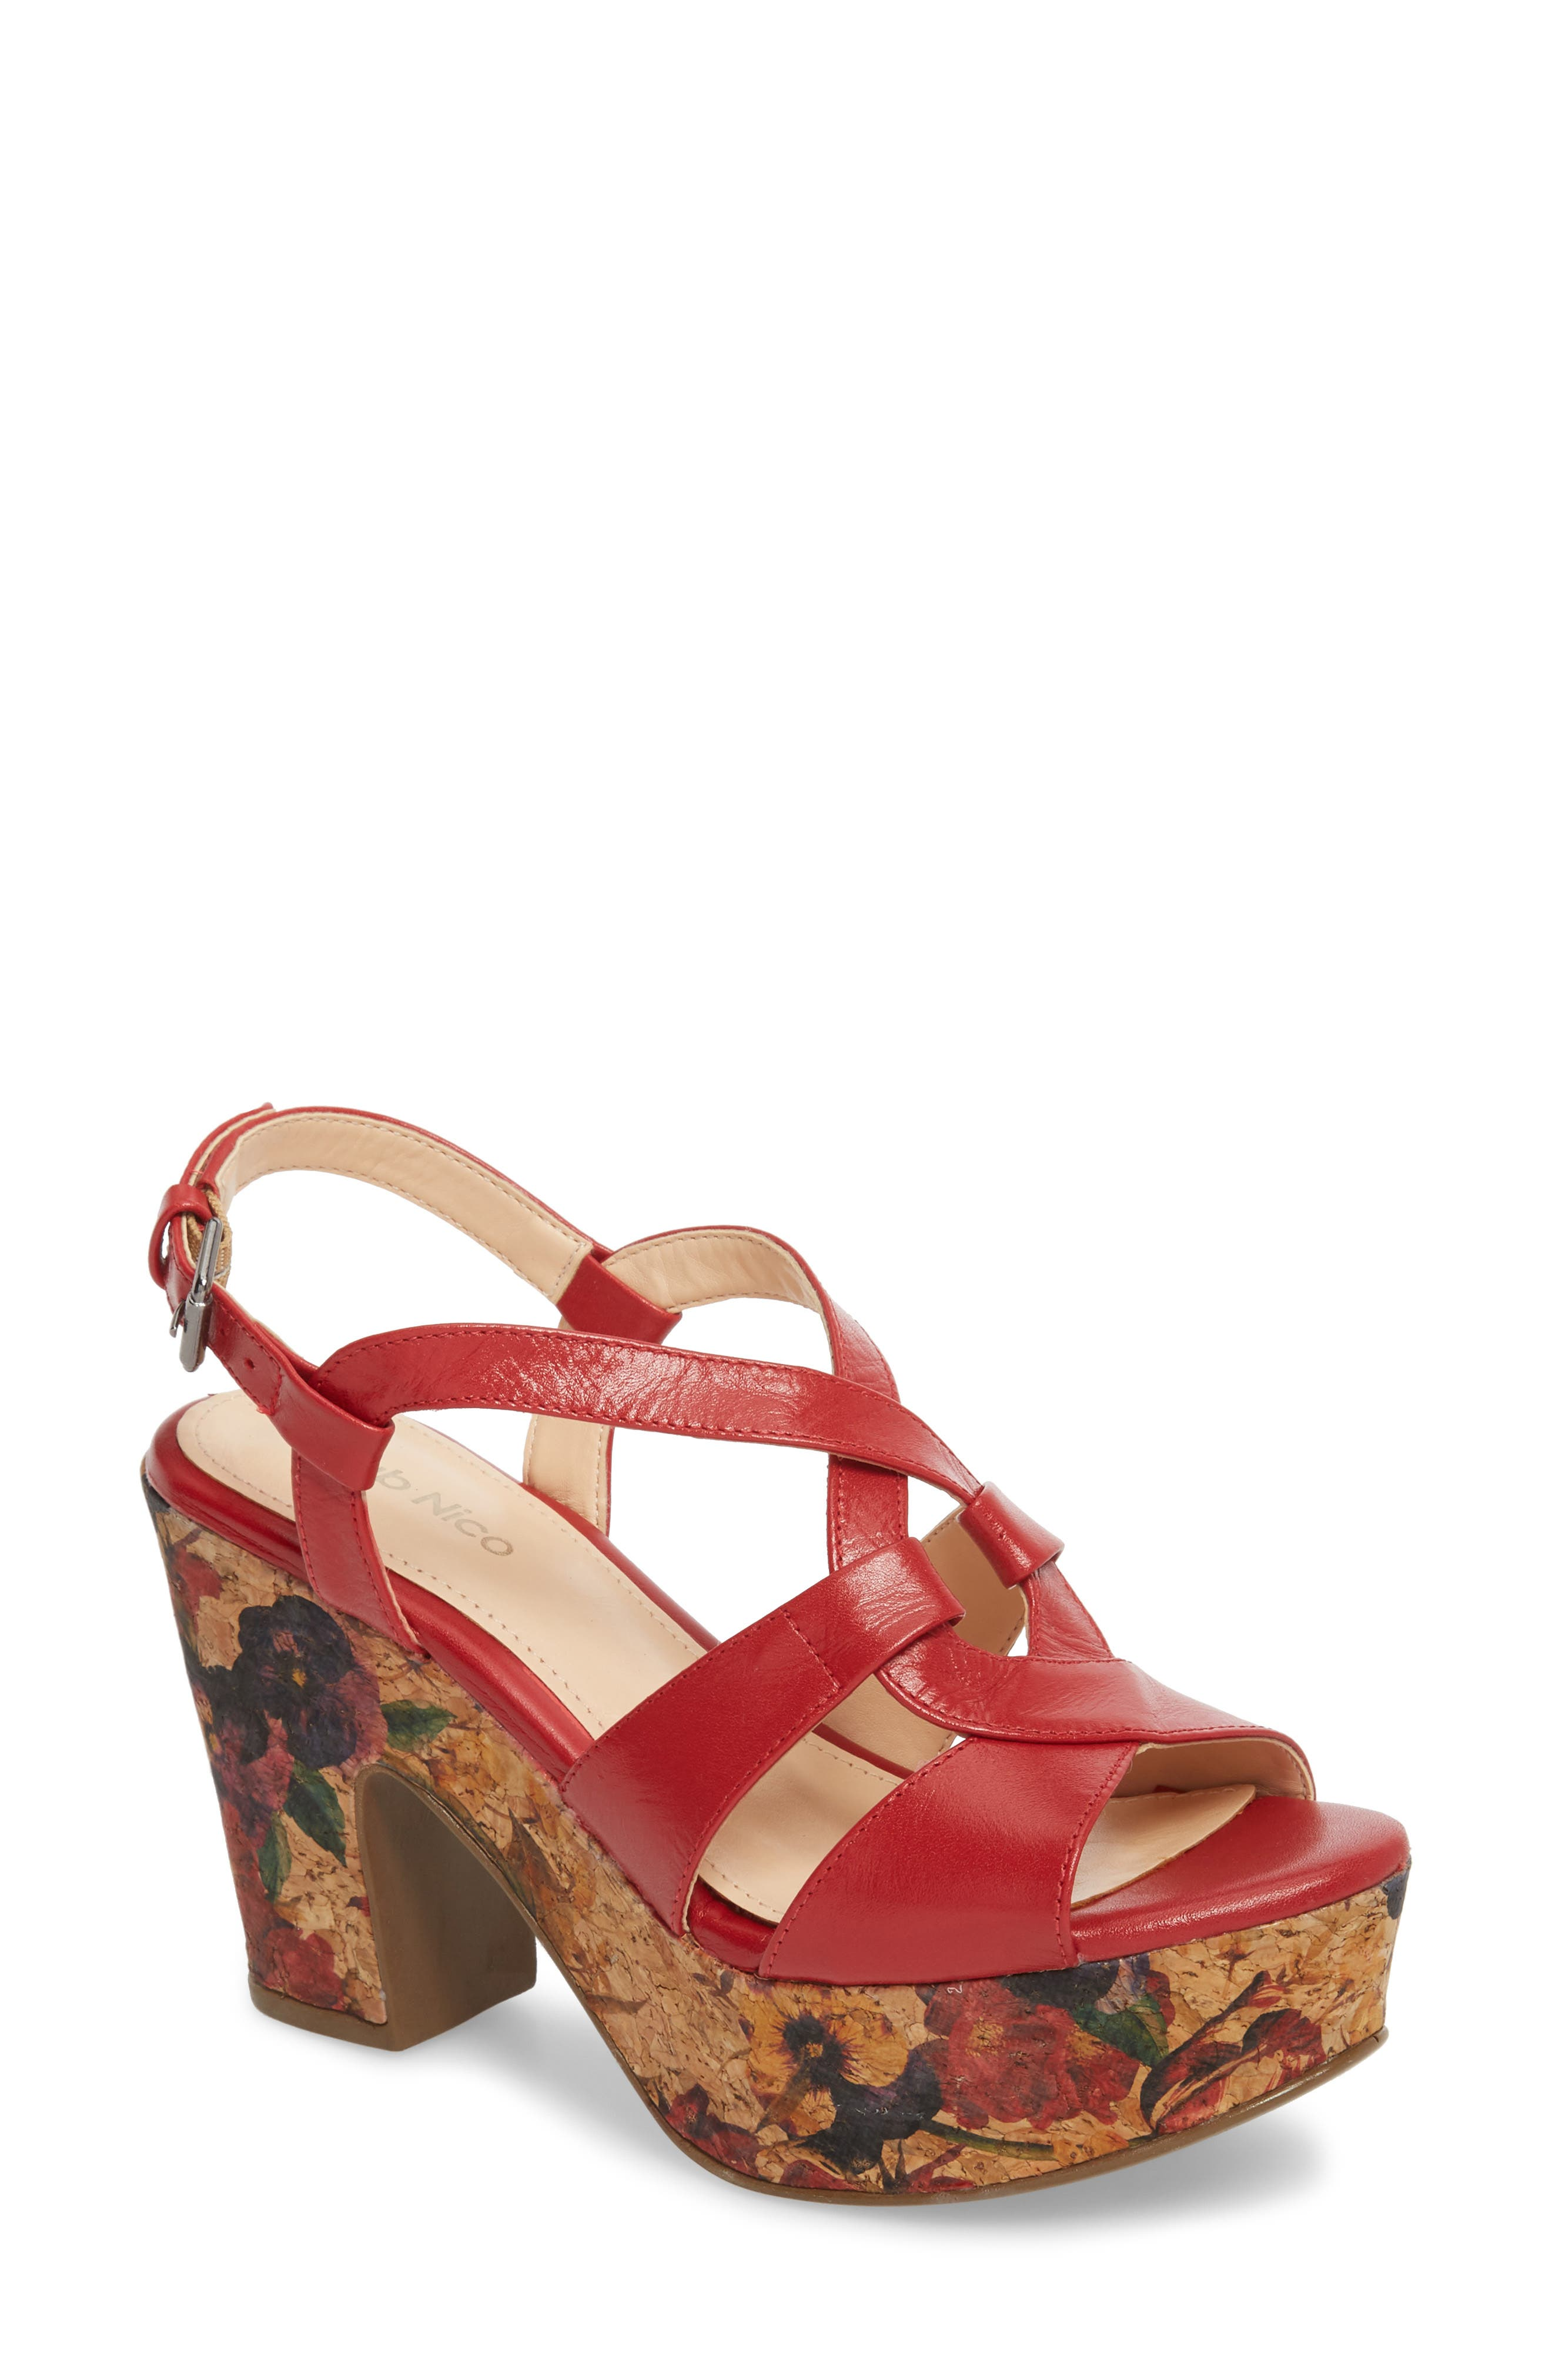 Victoria Platform Sandal,                         Main,                         color, Red Leather